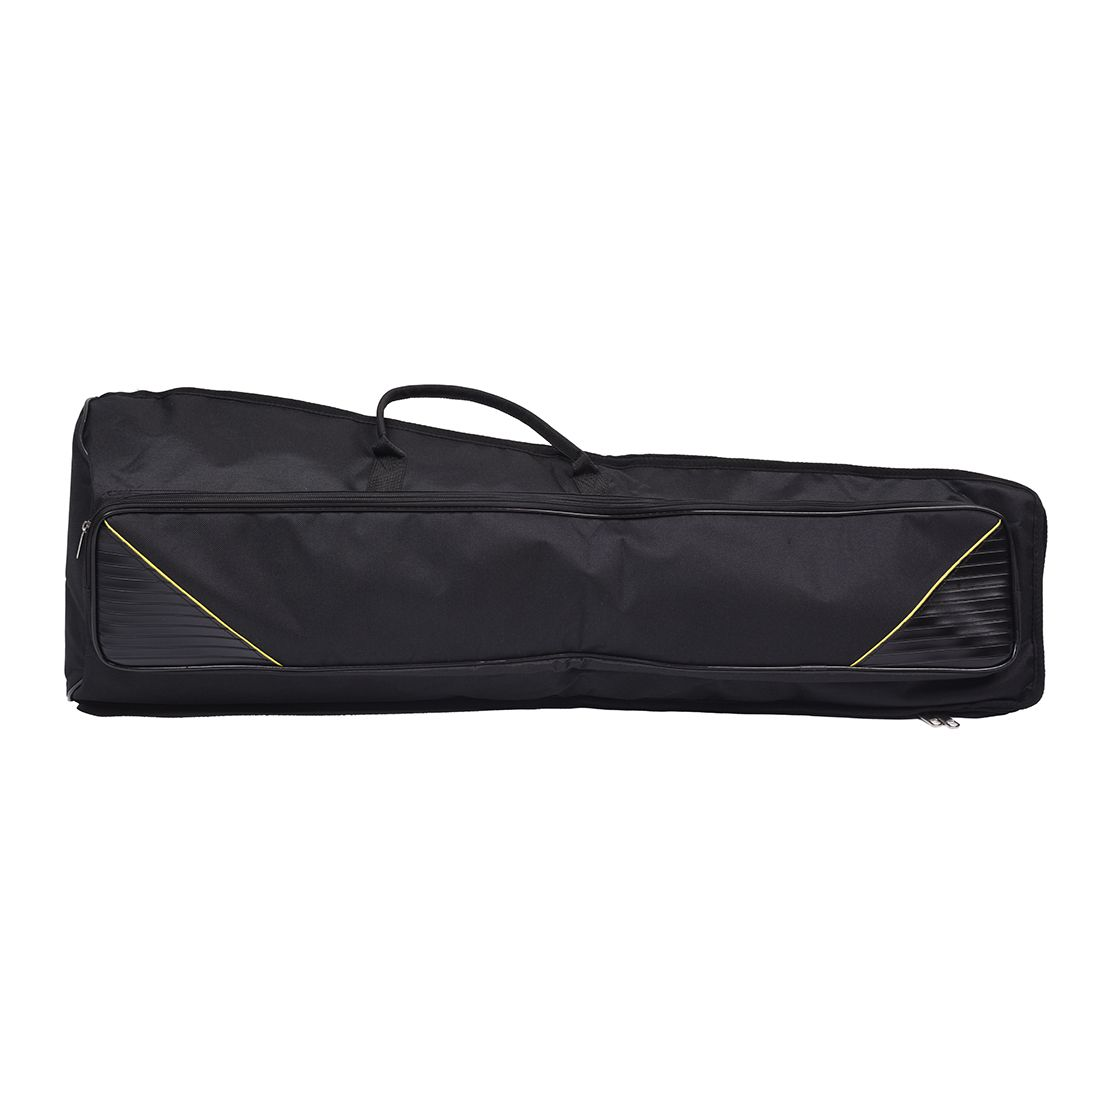 2Pcs New Tenor Trombone Gig Bag Lightweight Case Black 2 pcs of new tenor trombone gig bag lightweight case black